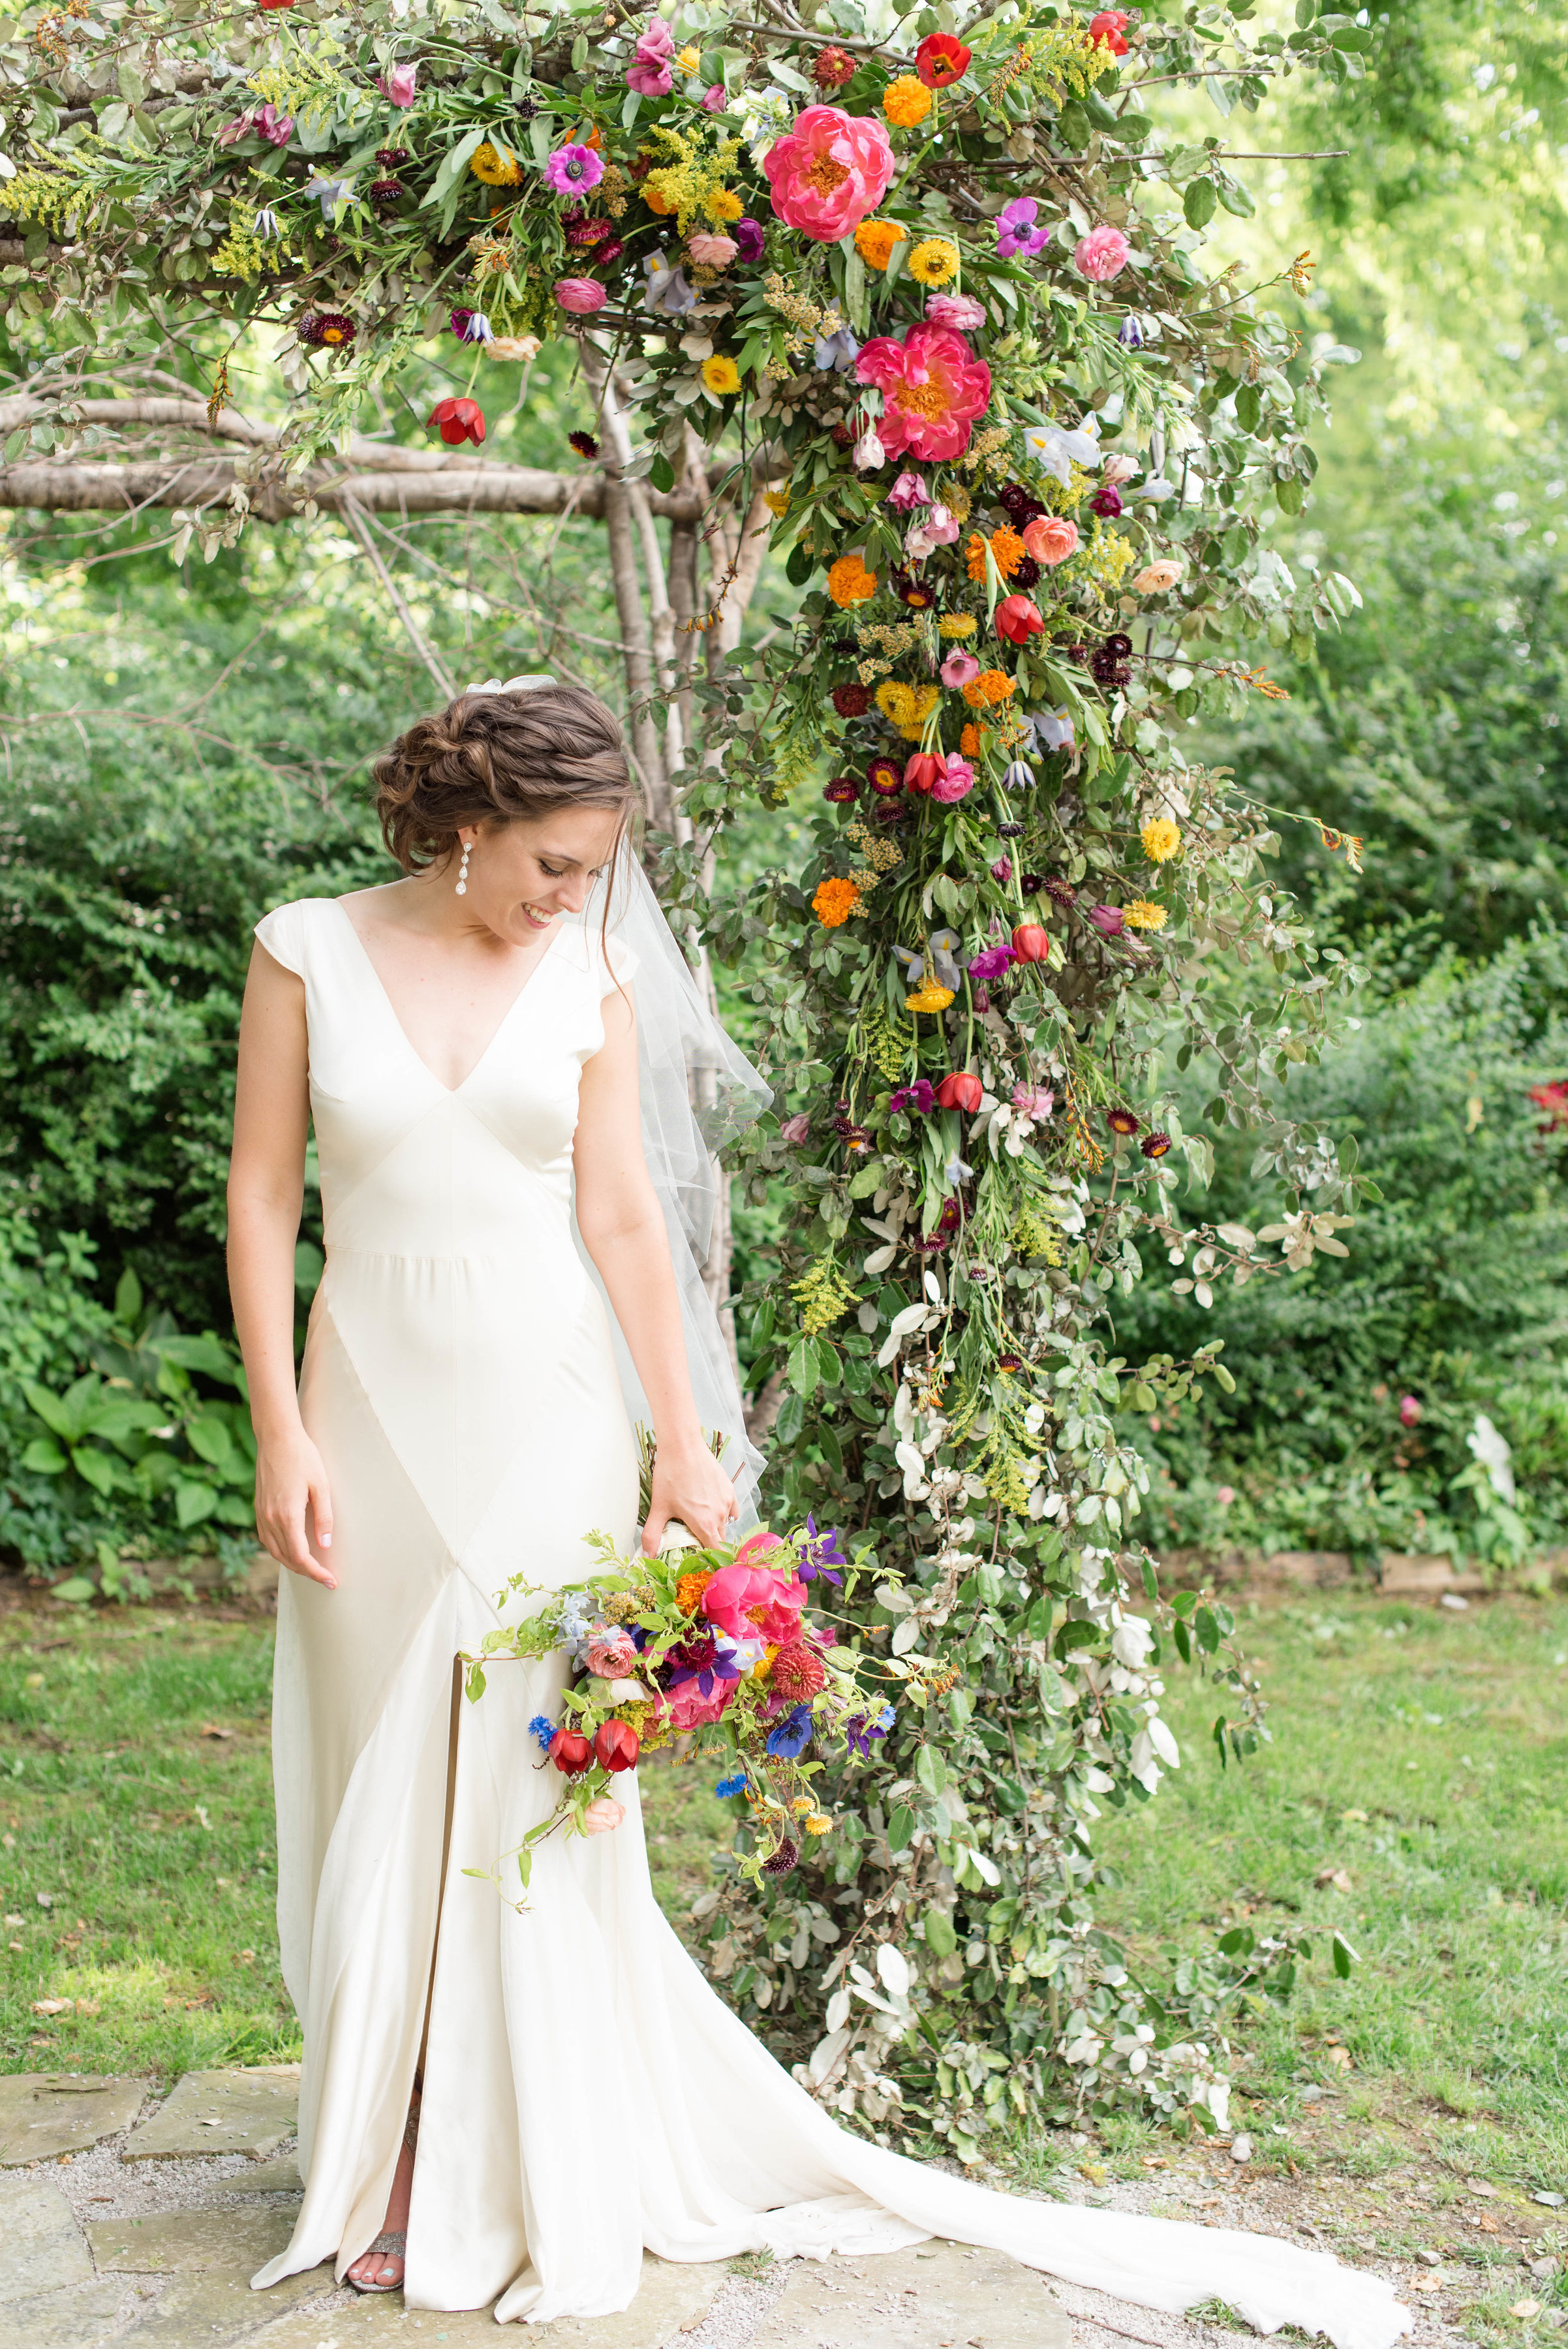 Lush, bright bridal bouquet with peonies, ranunculus, tulips, and cornflower // Chagall Painting Inspired Wedding Flowers